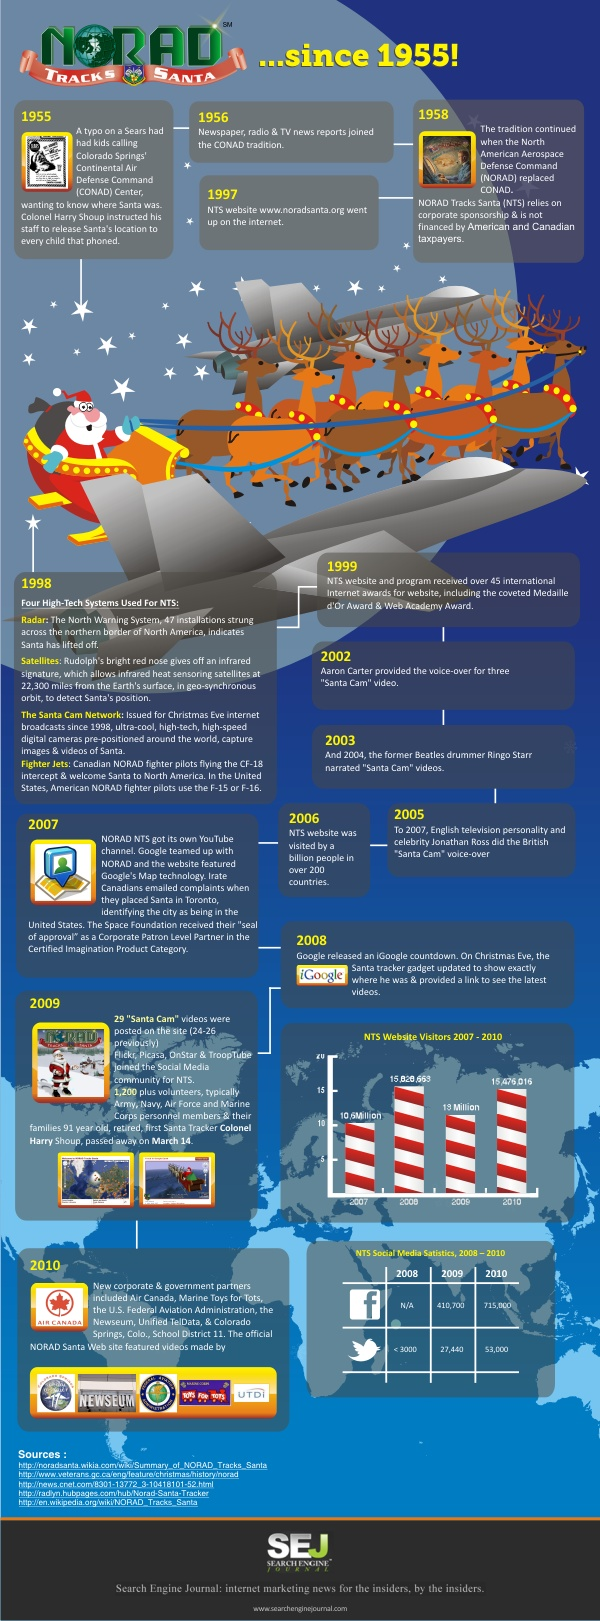 The History of NORAD, Google &